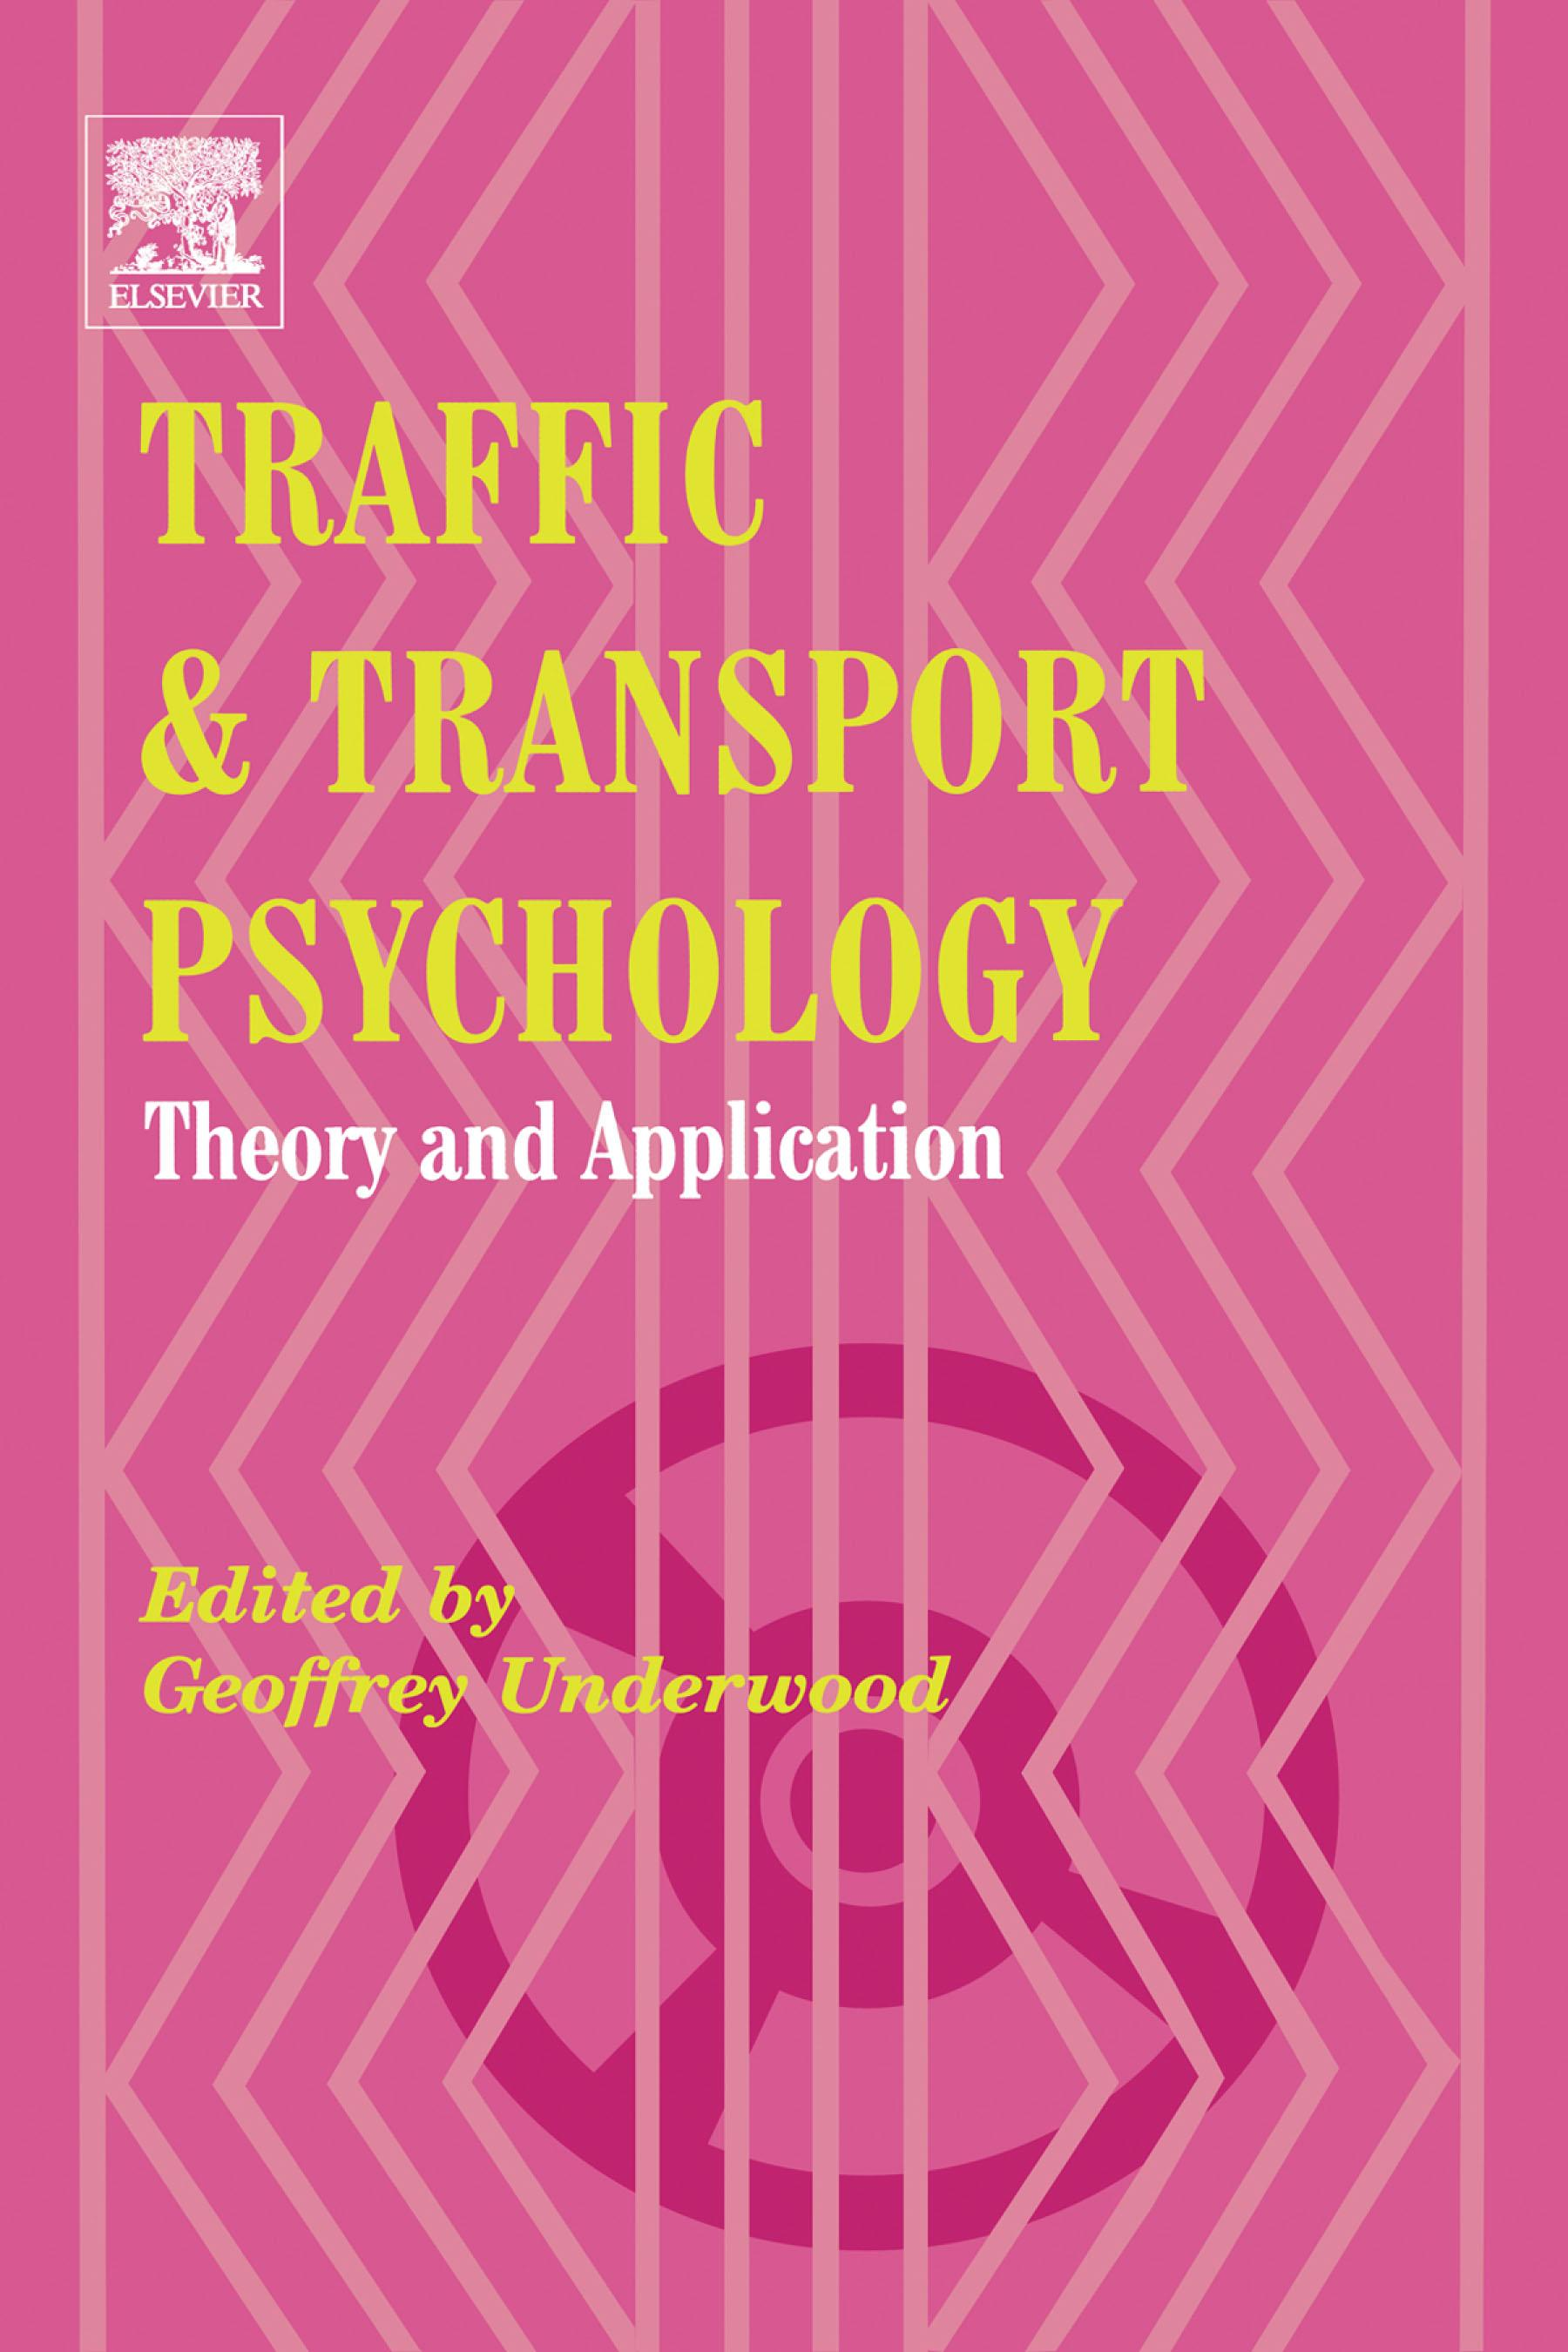 Traffic and Transport Psychology: Theory and Application